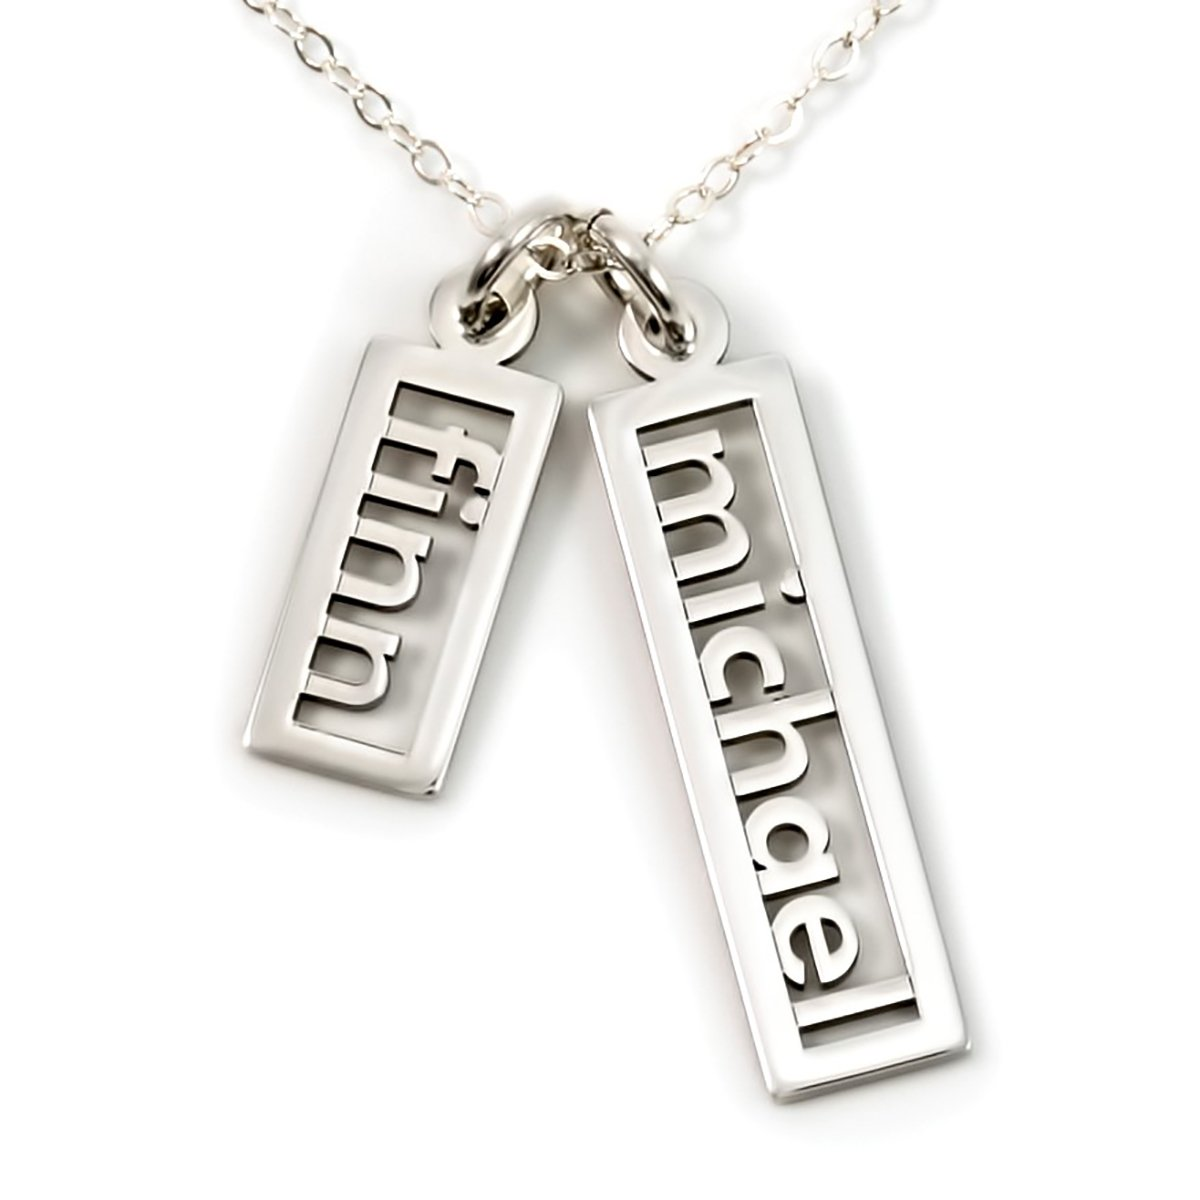 AJ's Collection Personalized Necklace Open Double Sterling Silver or 14k Gold Plate over Sterling Silver (20)